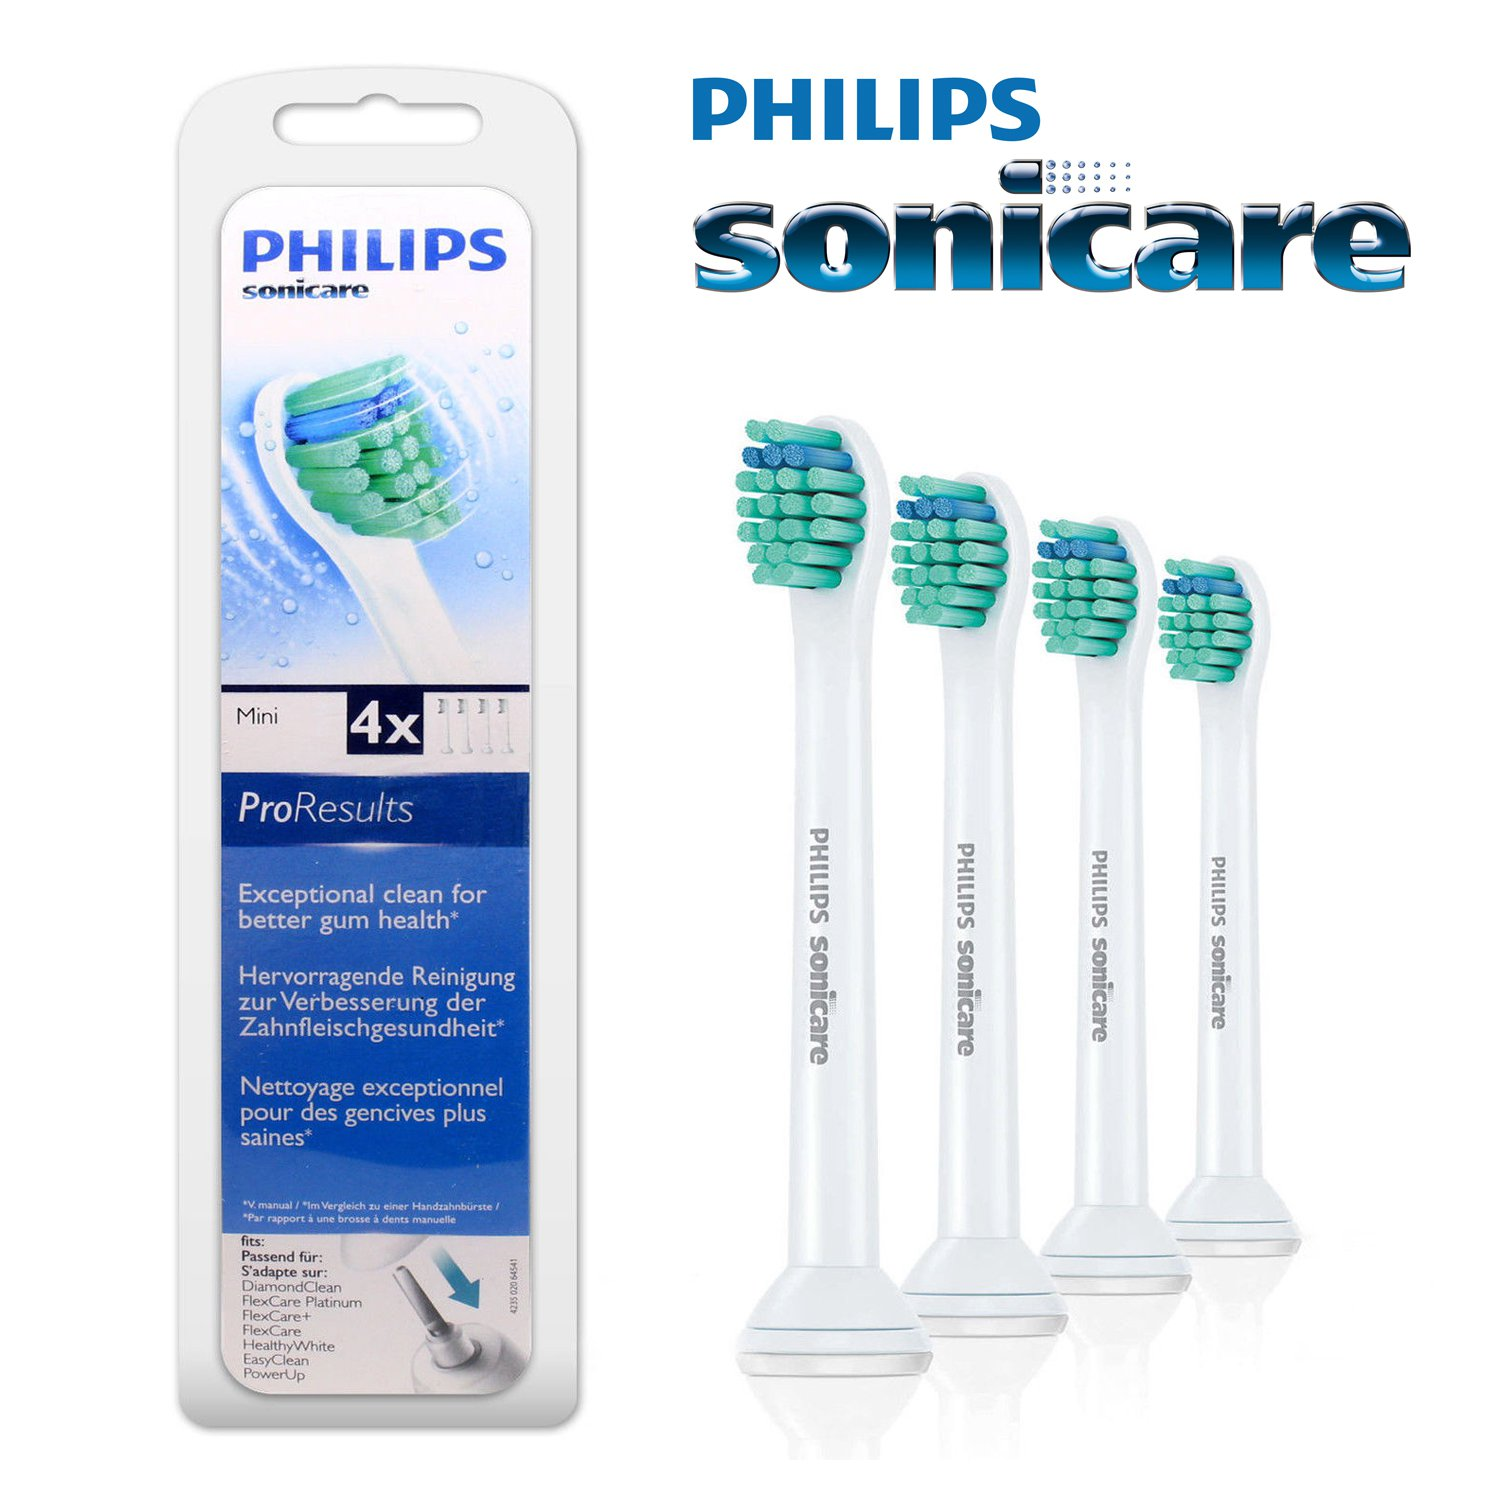 4 x Philips Sonicare ProResults Mini Electric Toothbrush Heads HX6024